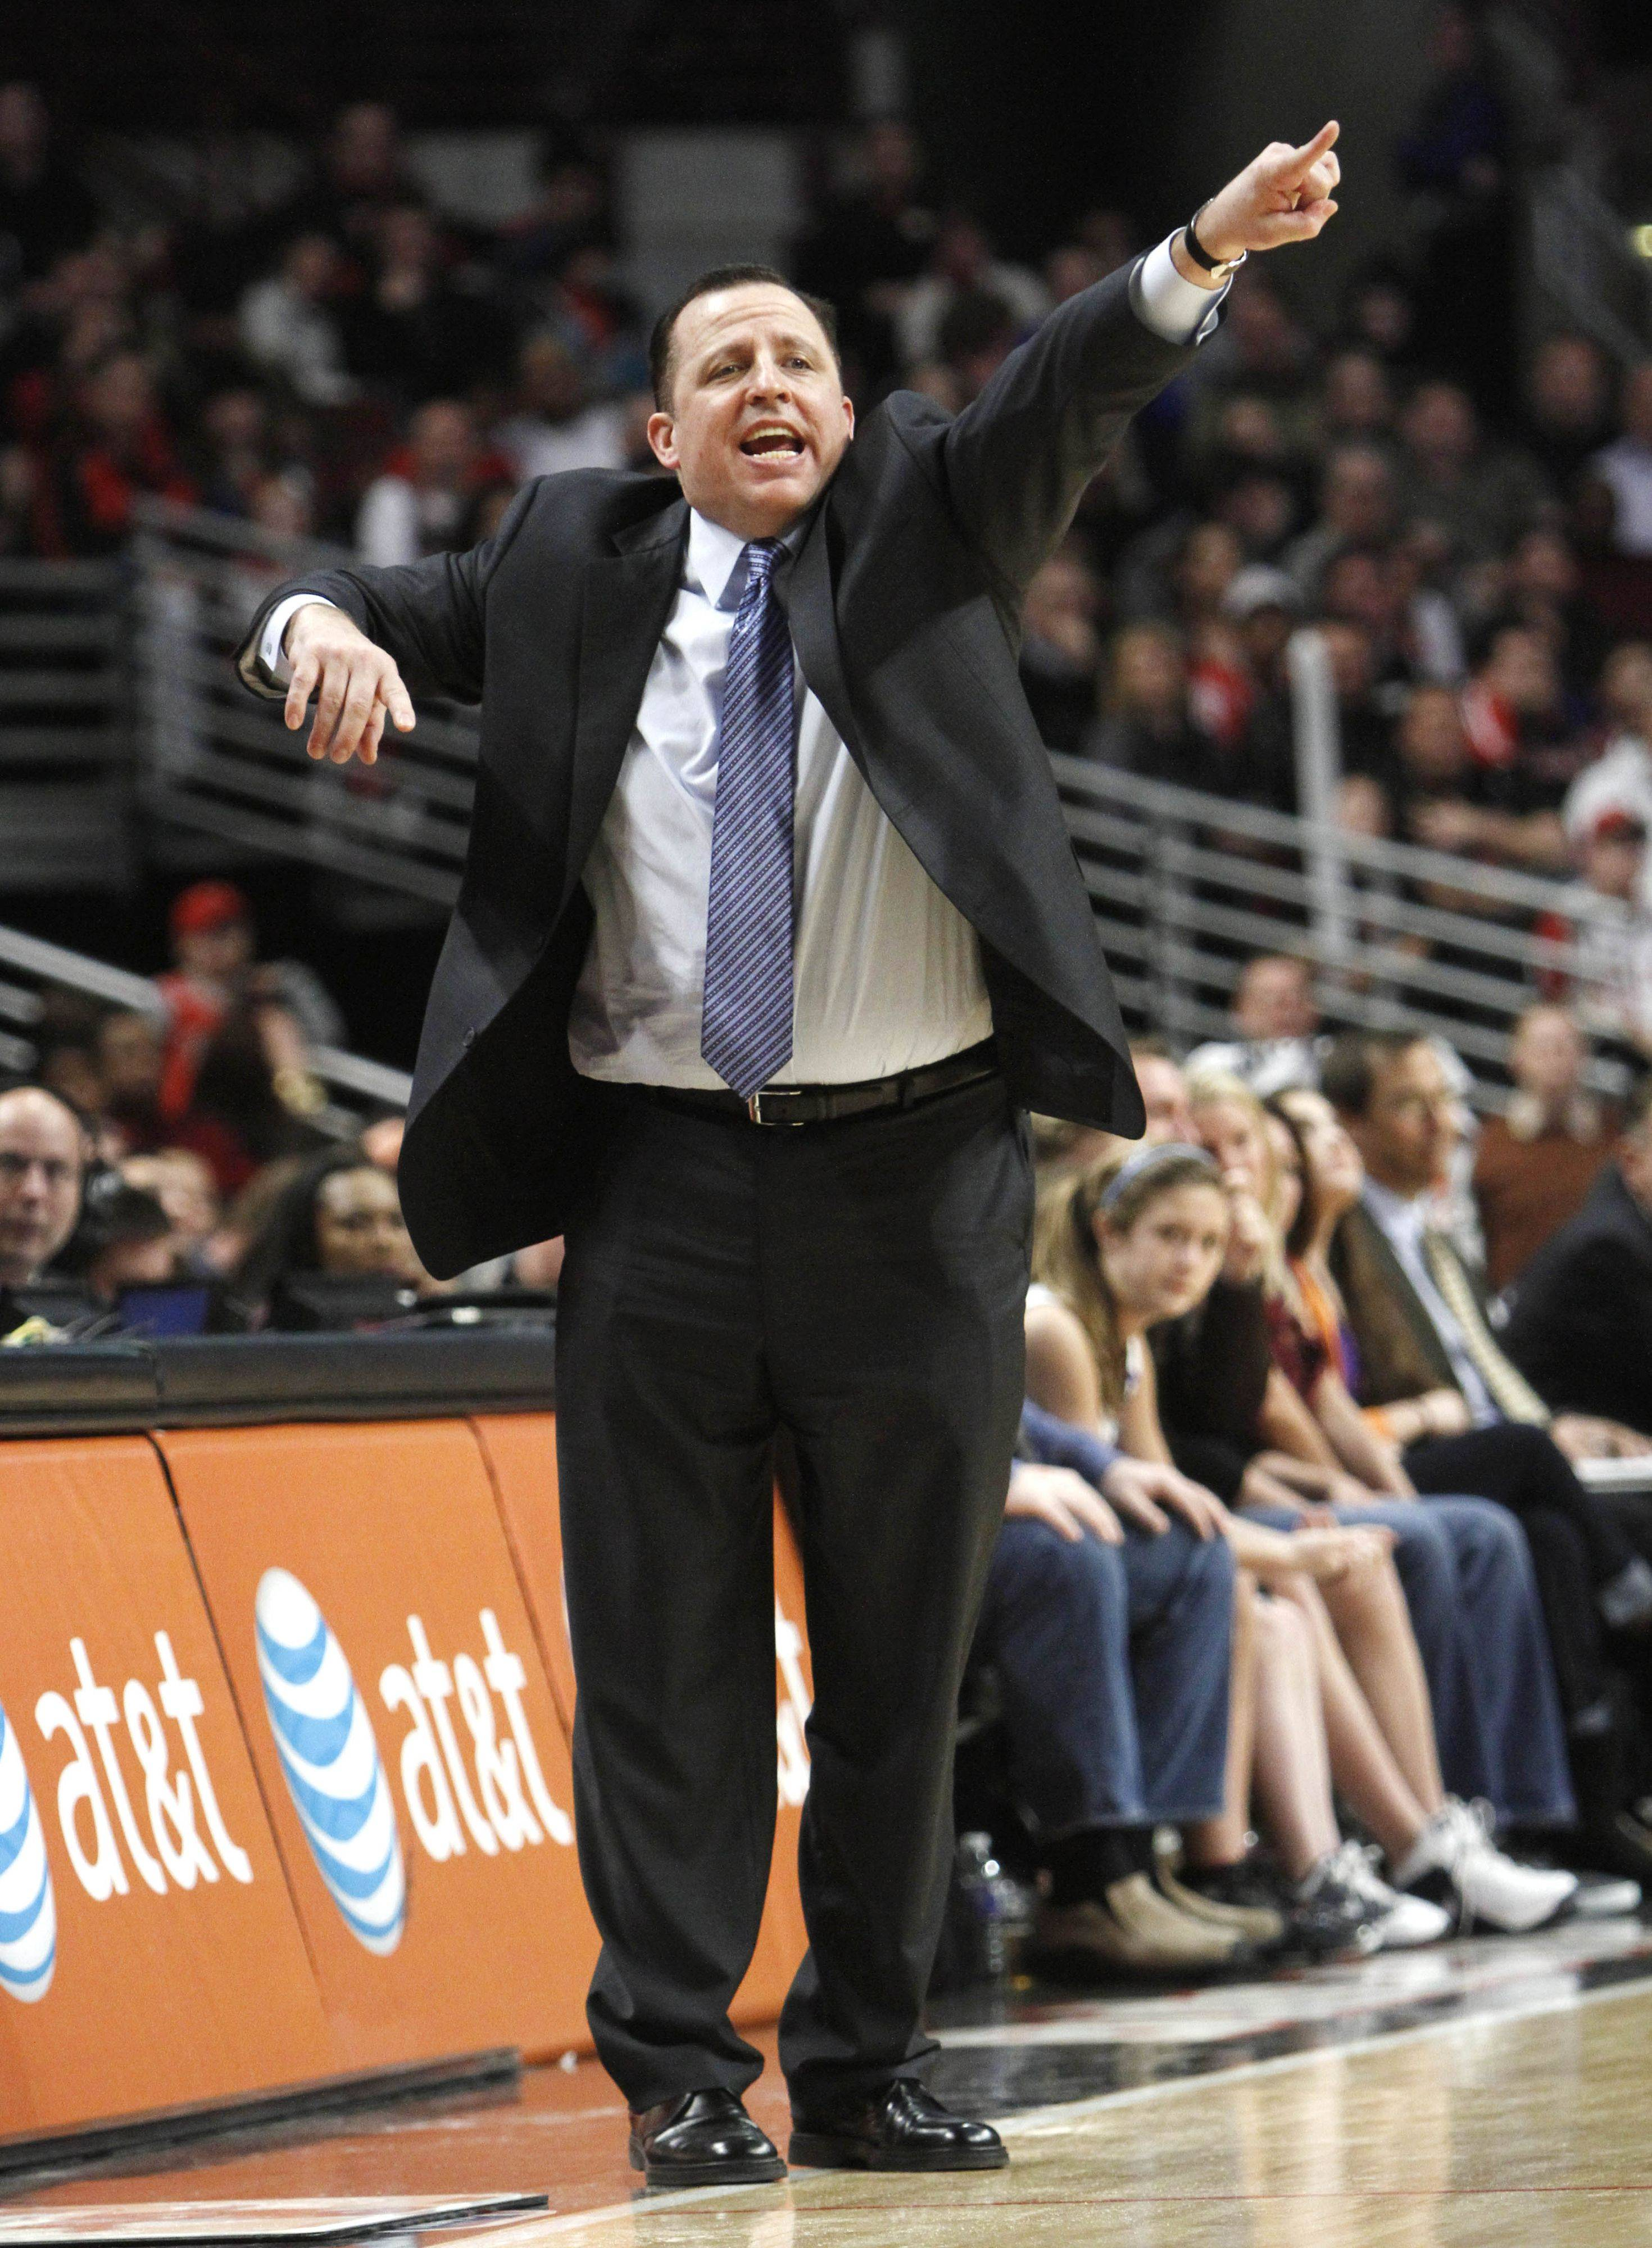 Chicago Bulls head coach Tom Thibodeau gives directions during the fourth quarter as the Bulls defeated the Indiana Pacers.